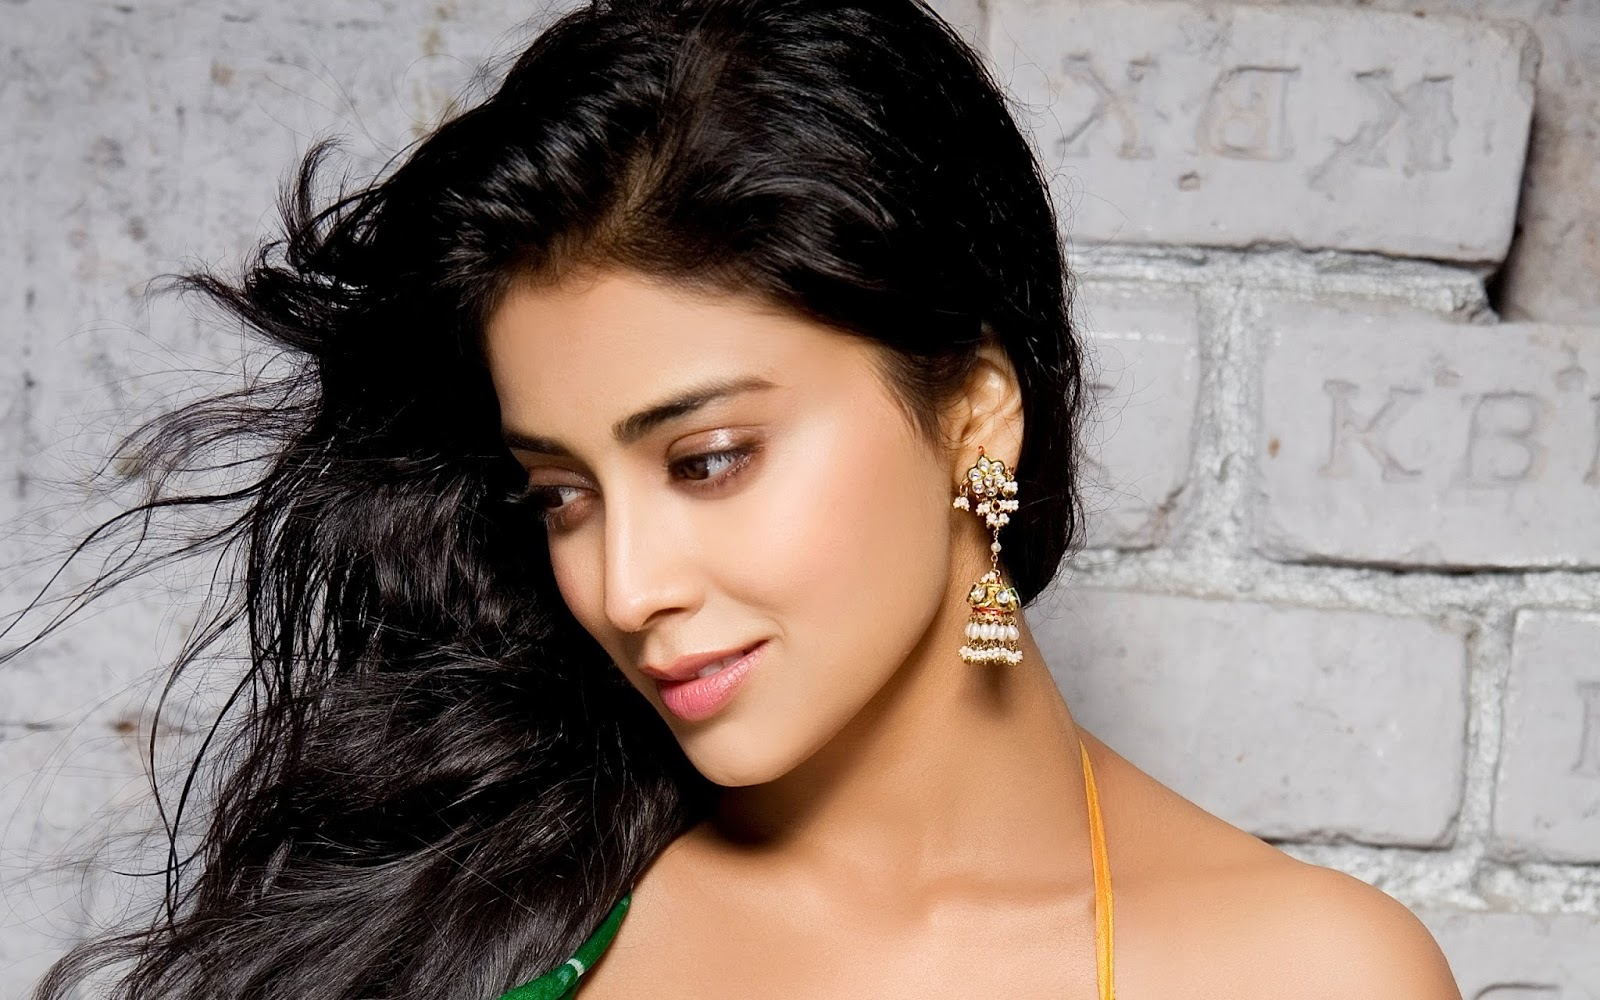 2017 Shriya Saran Hd Pictures And Hot Pics Download Top Hd